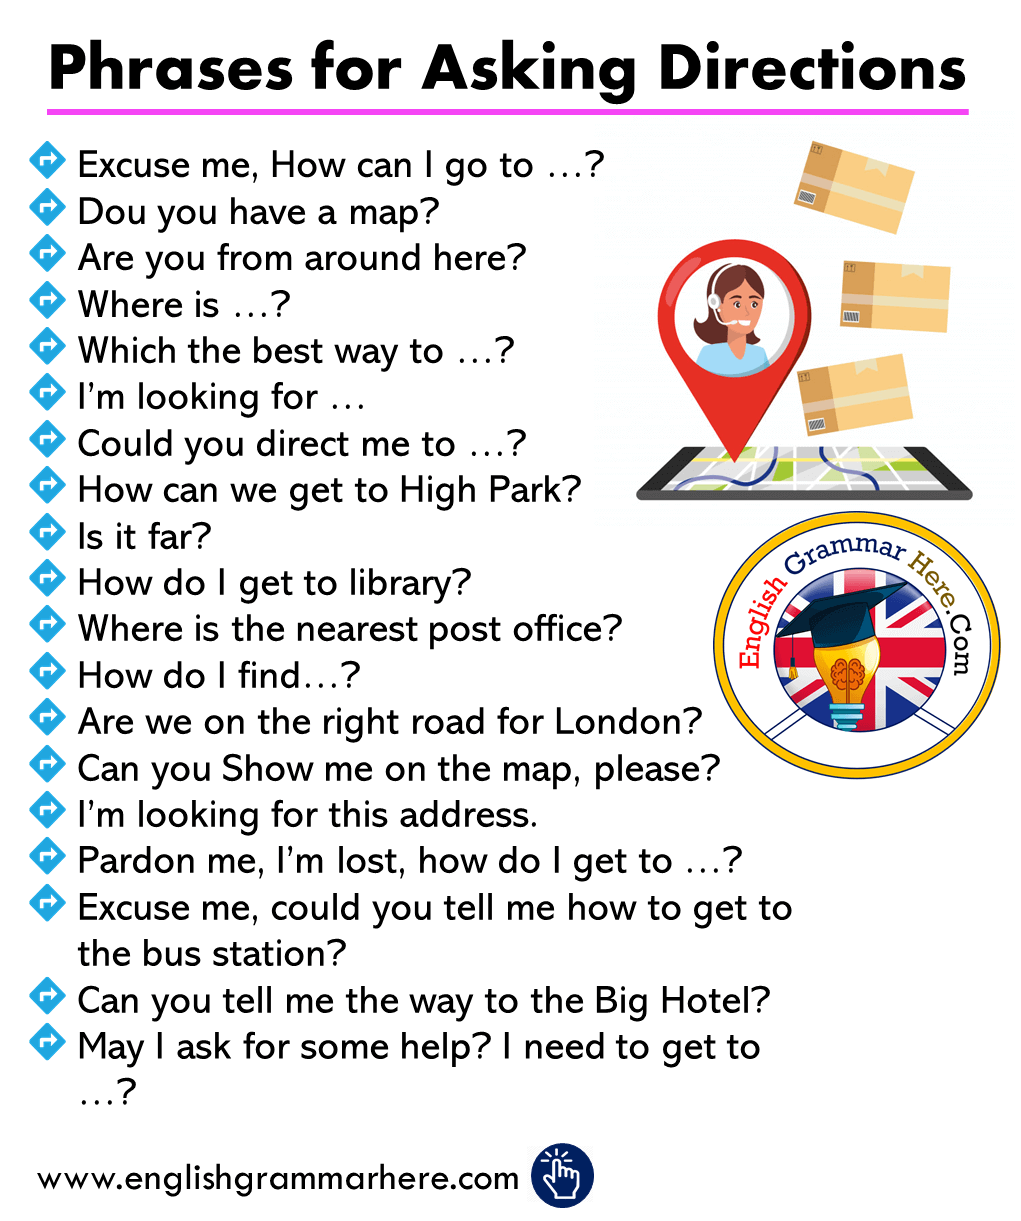 Phrases for Asking Directions in English